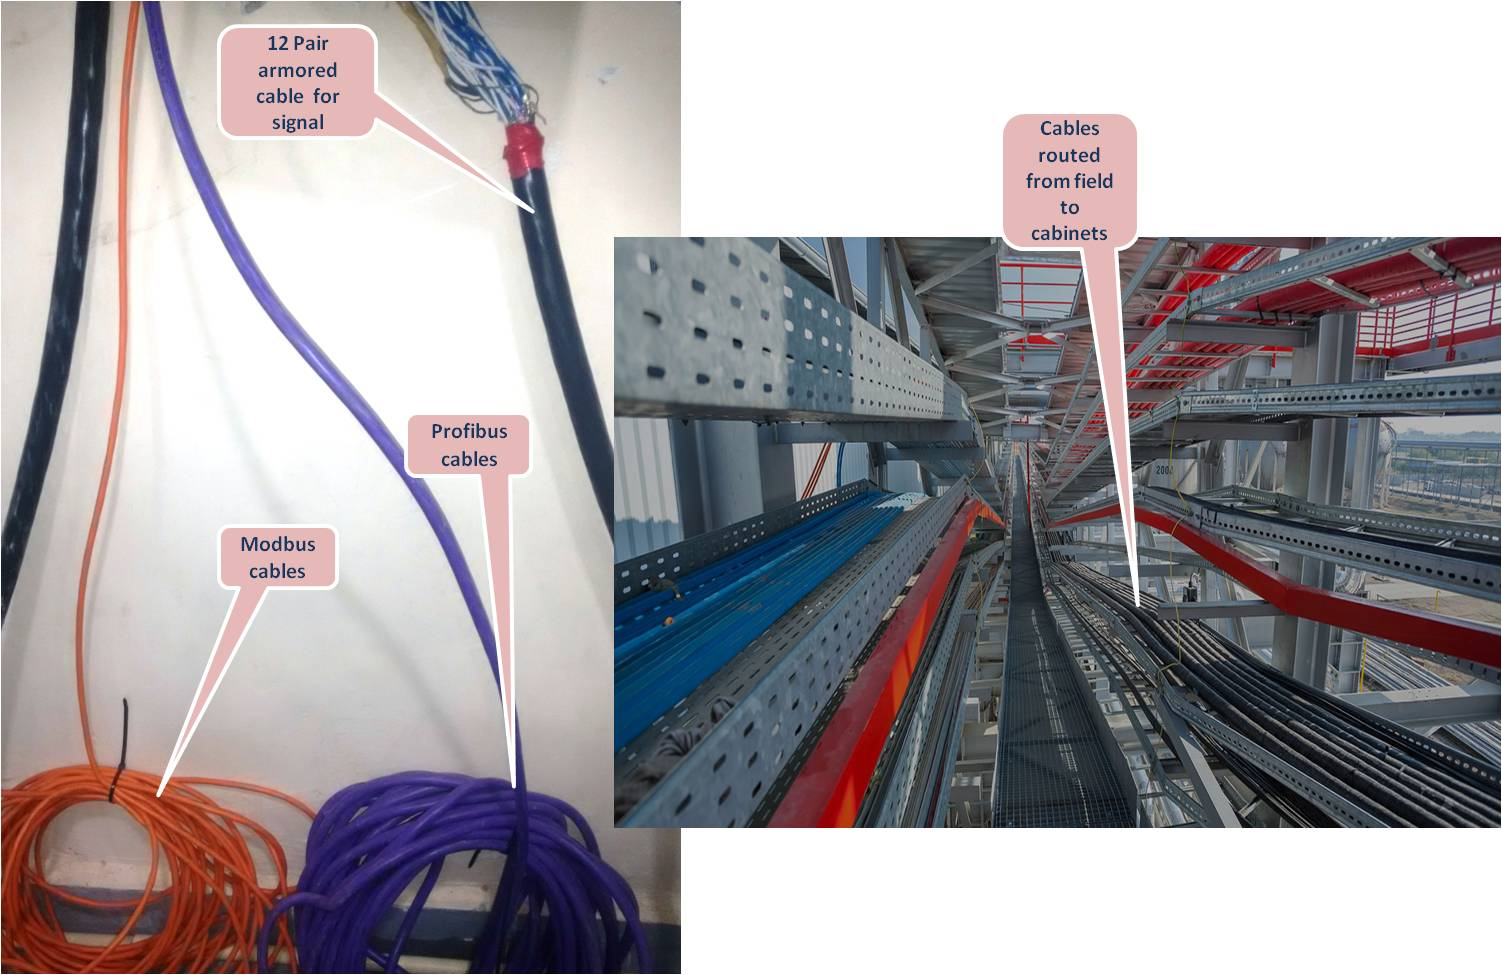 Icd Instrumentation Control And Design Engineering Armored Cable Wiring Cables Routing